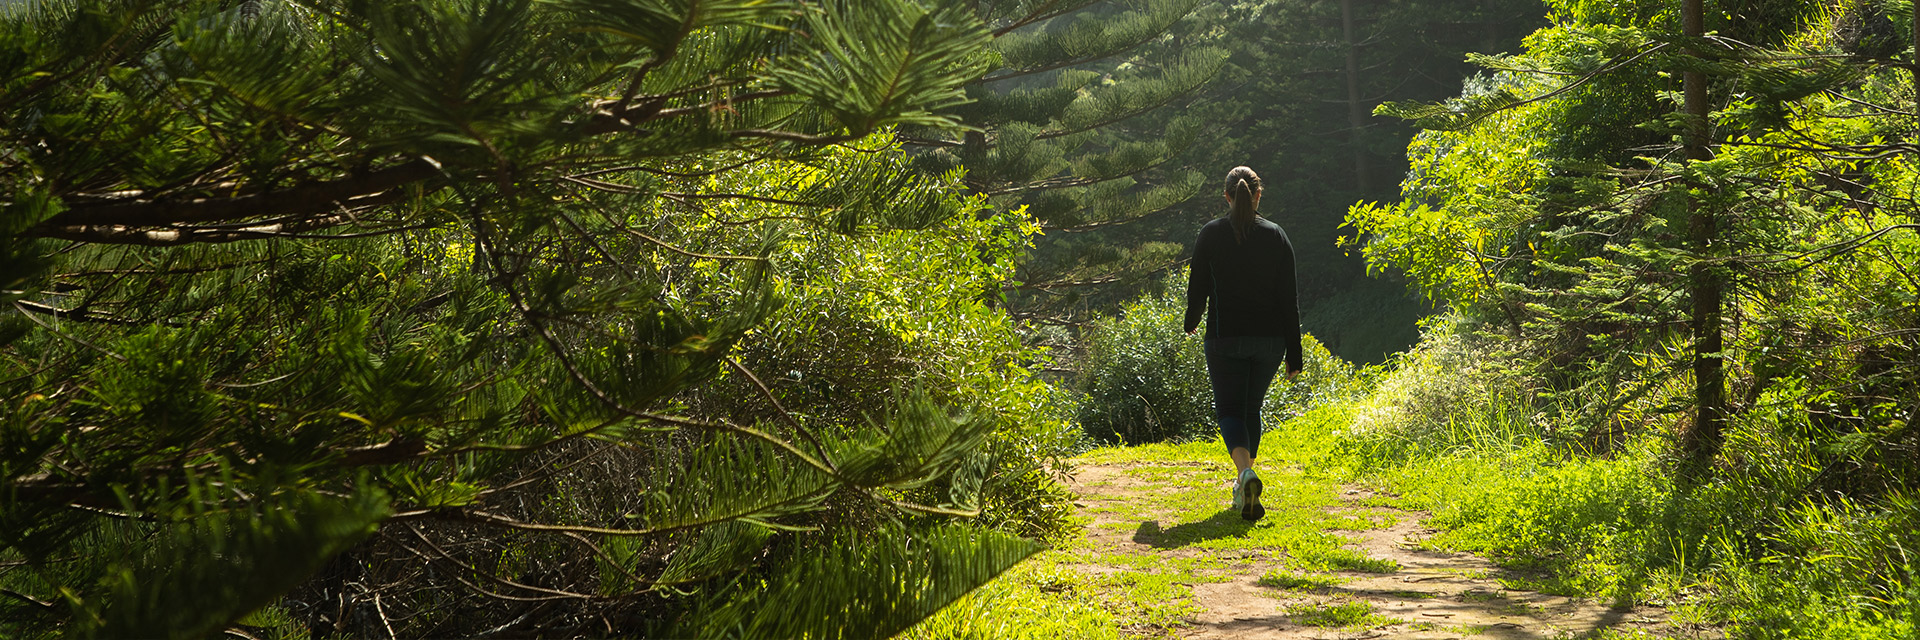 Solo female in exercise gear walks along a worn, grassy path through a forest of Norfolk pine trees and other vegetation